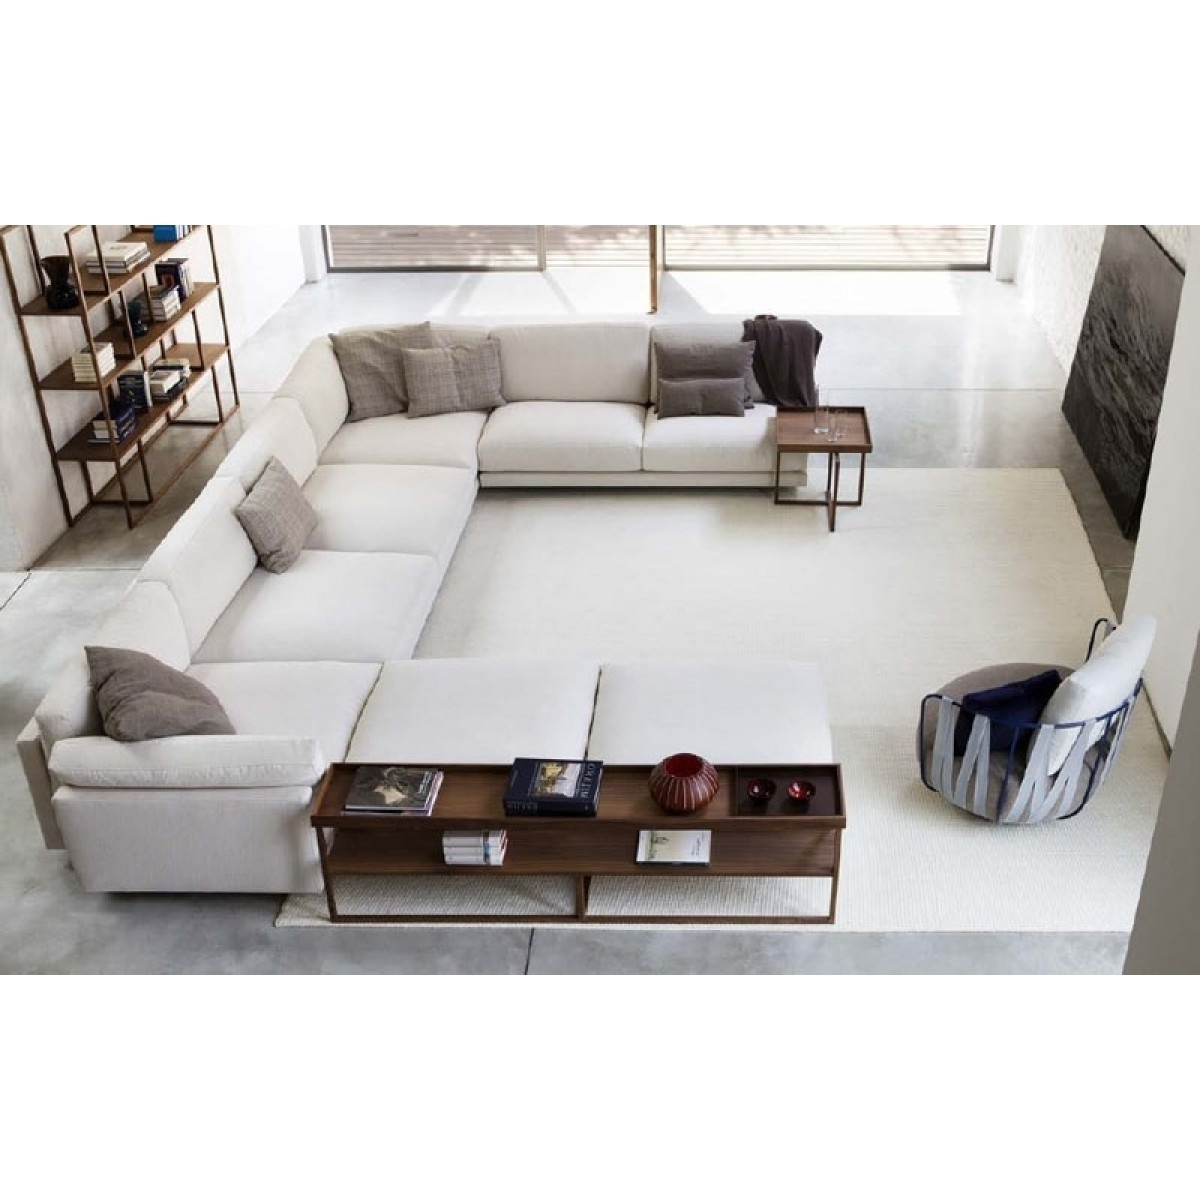 Sofa : Buy Sofa Love Couch Furniture Extra Long Sectional Sofa Intended For Current Long Modern Sofas (View 17 of 20)